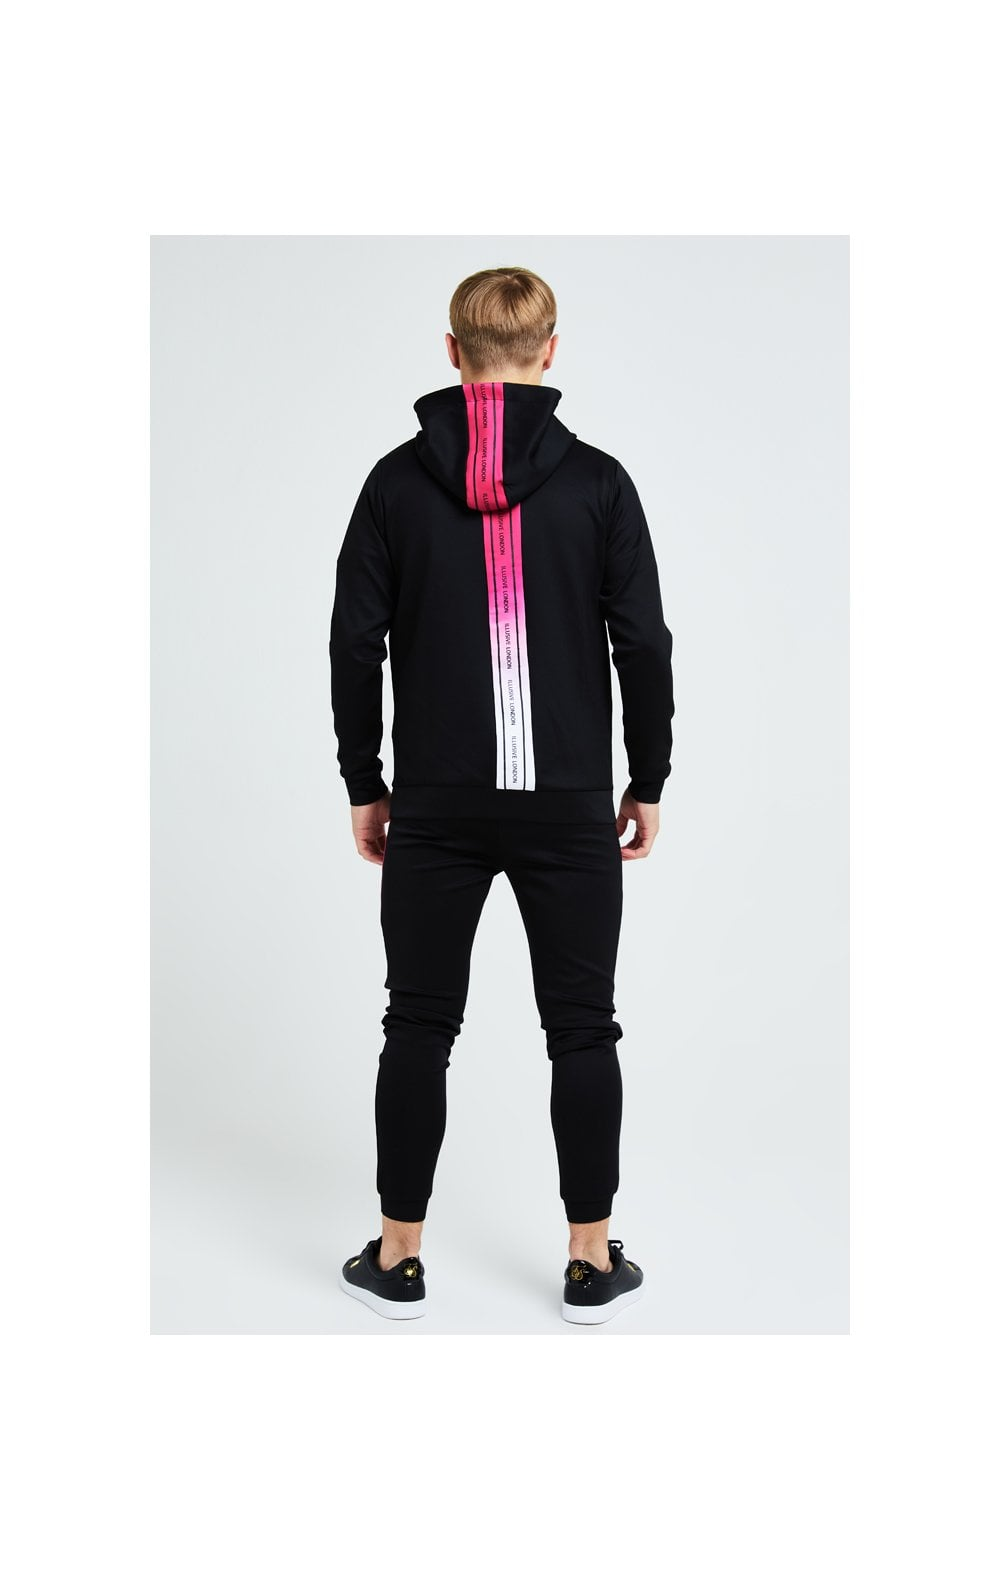 Illusive London Flux Taped Overhead Hoodie - Black & Pink (3)